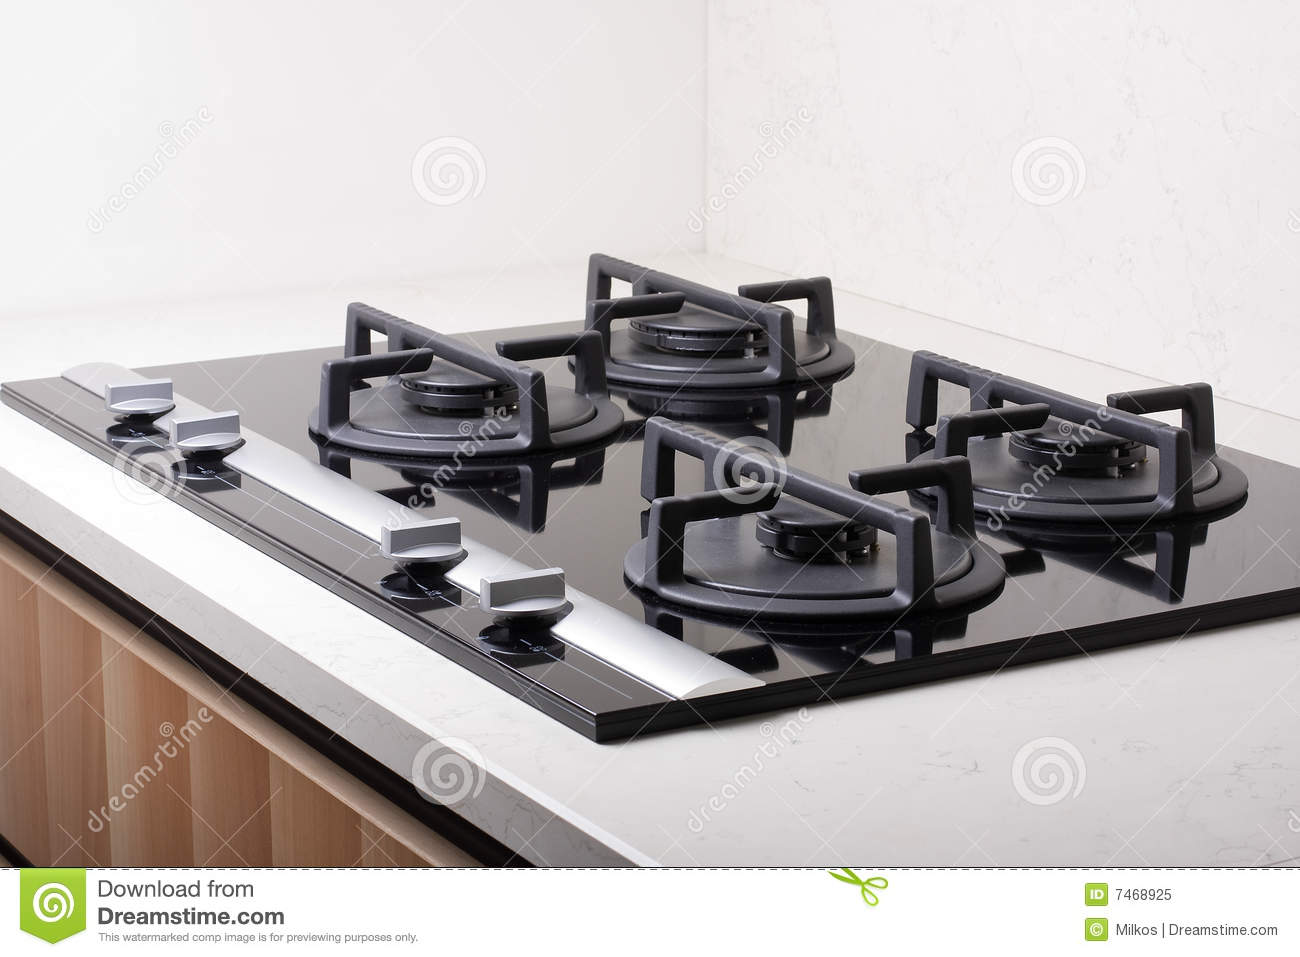 Modern Kitchen Stove modern kitchen gas stove stock photos, images, & pictures - 1,839